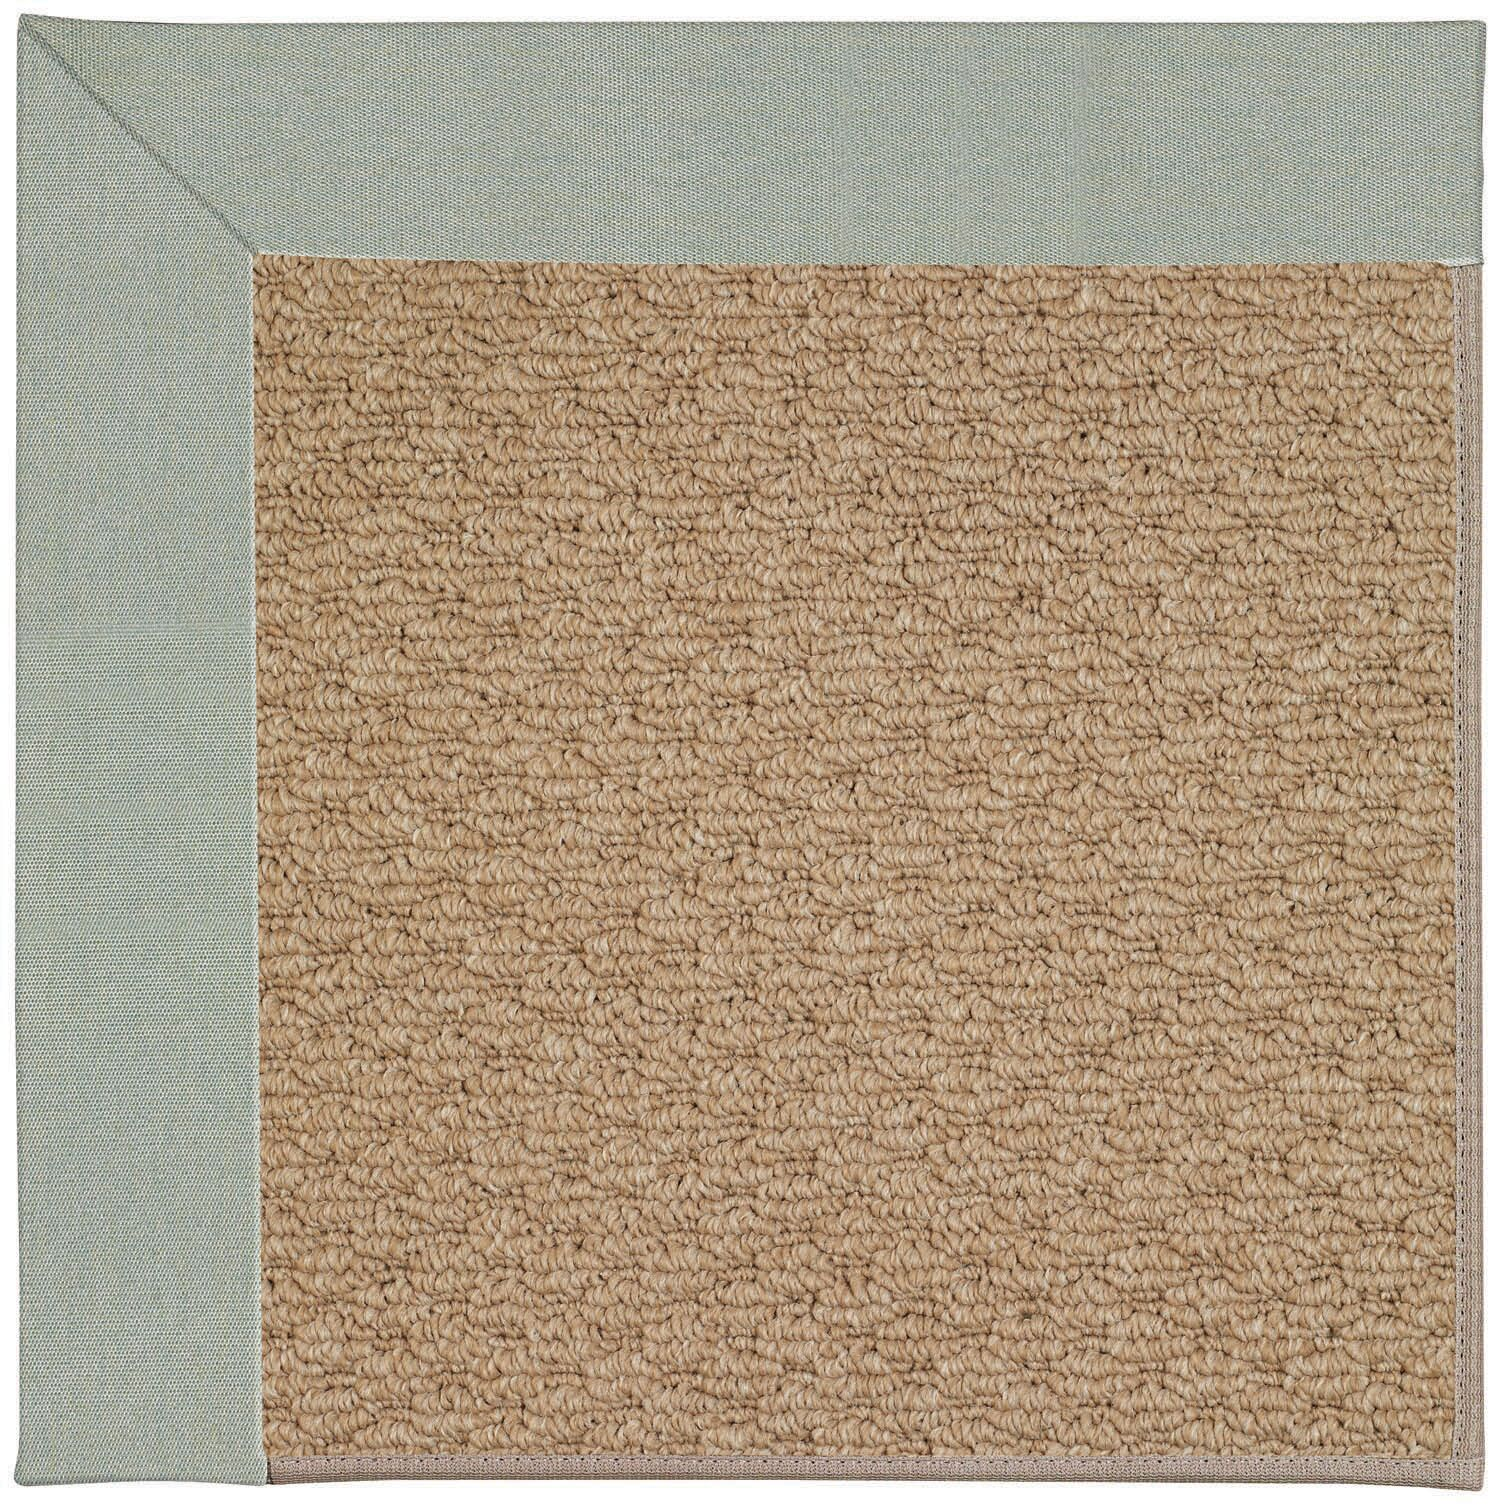 Lisle Machine Tufted Marine Blue/Brown Indoor/Outdoor Area Rug Rug Size: Rectangle 3' x 5'